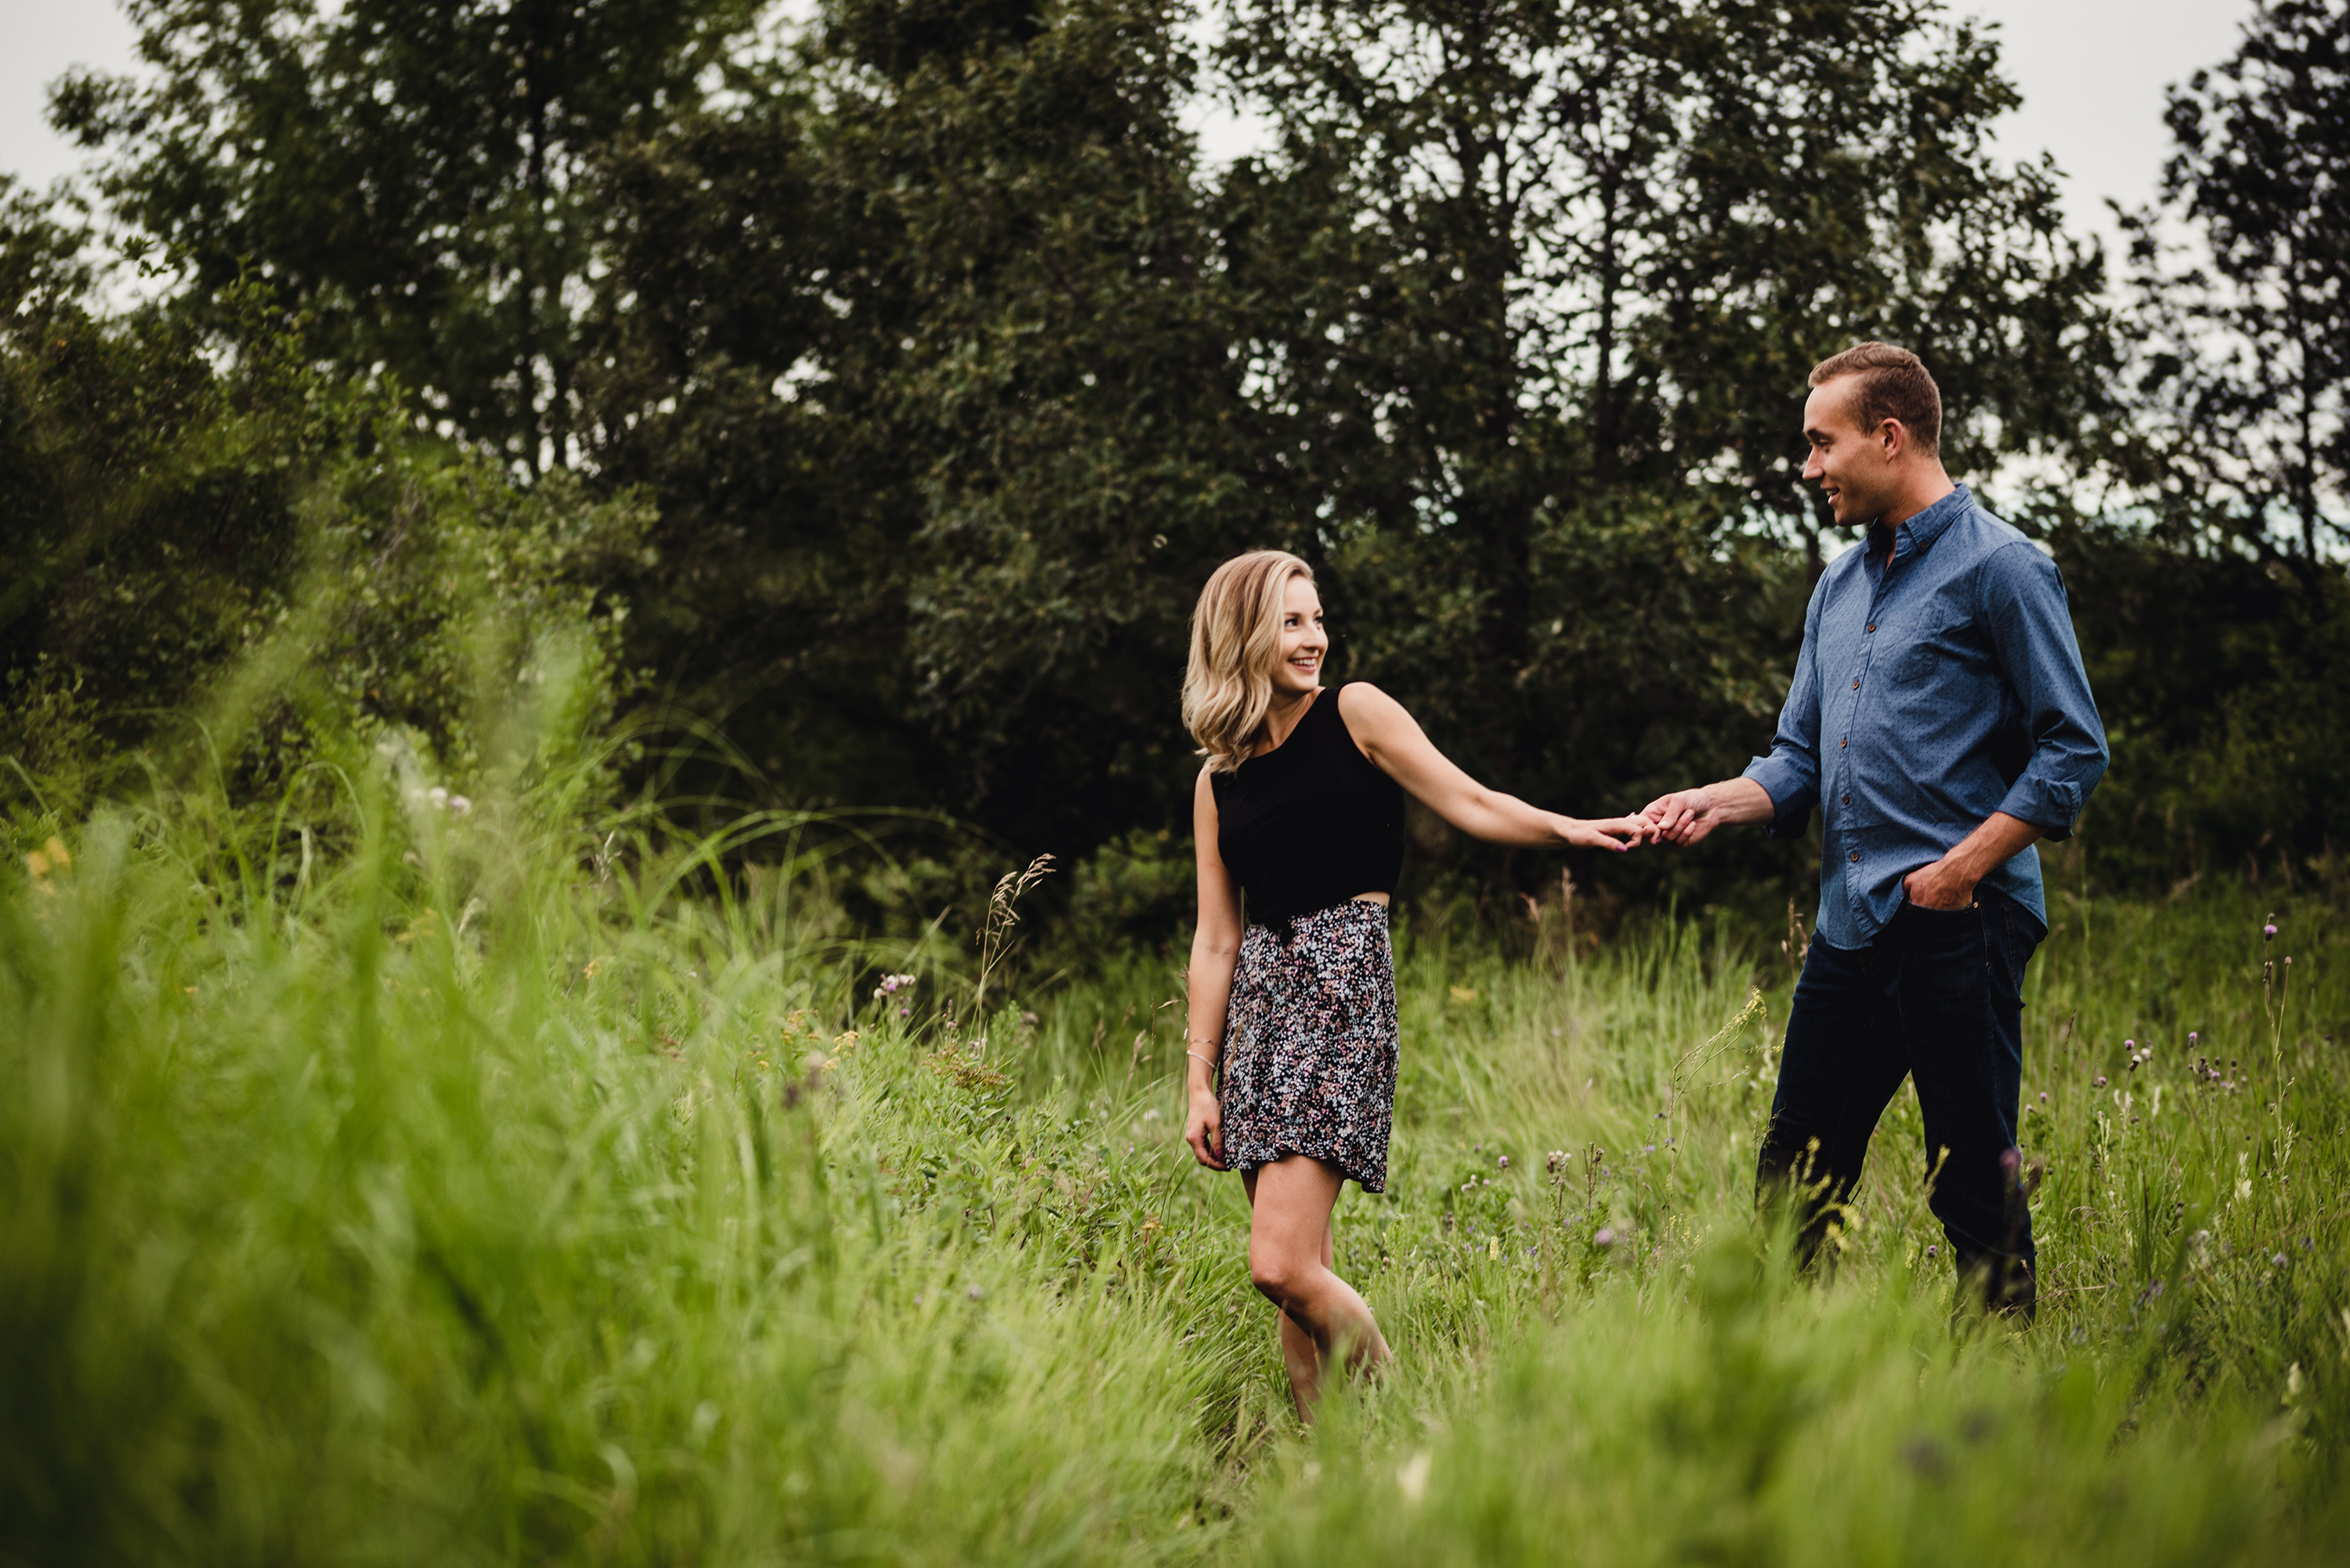 courtney-phil-engaged-beaudry-park-winnipeg-wedding-photographer